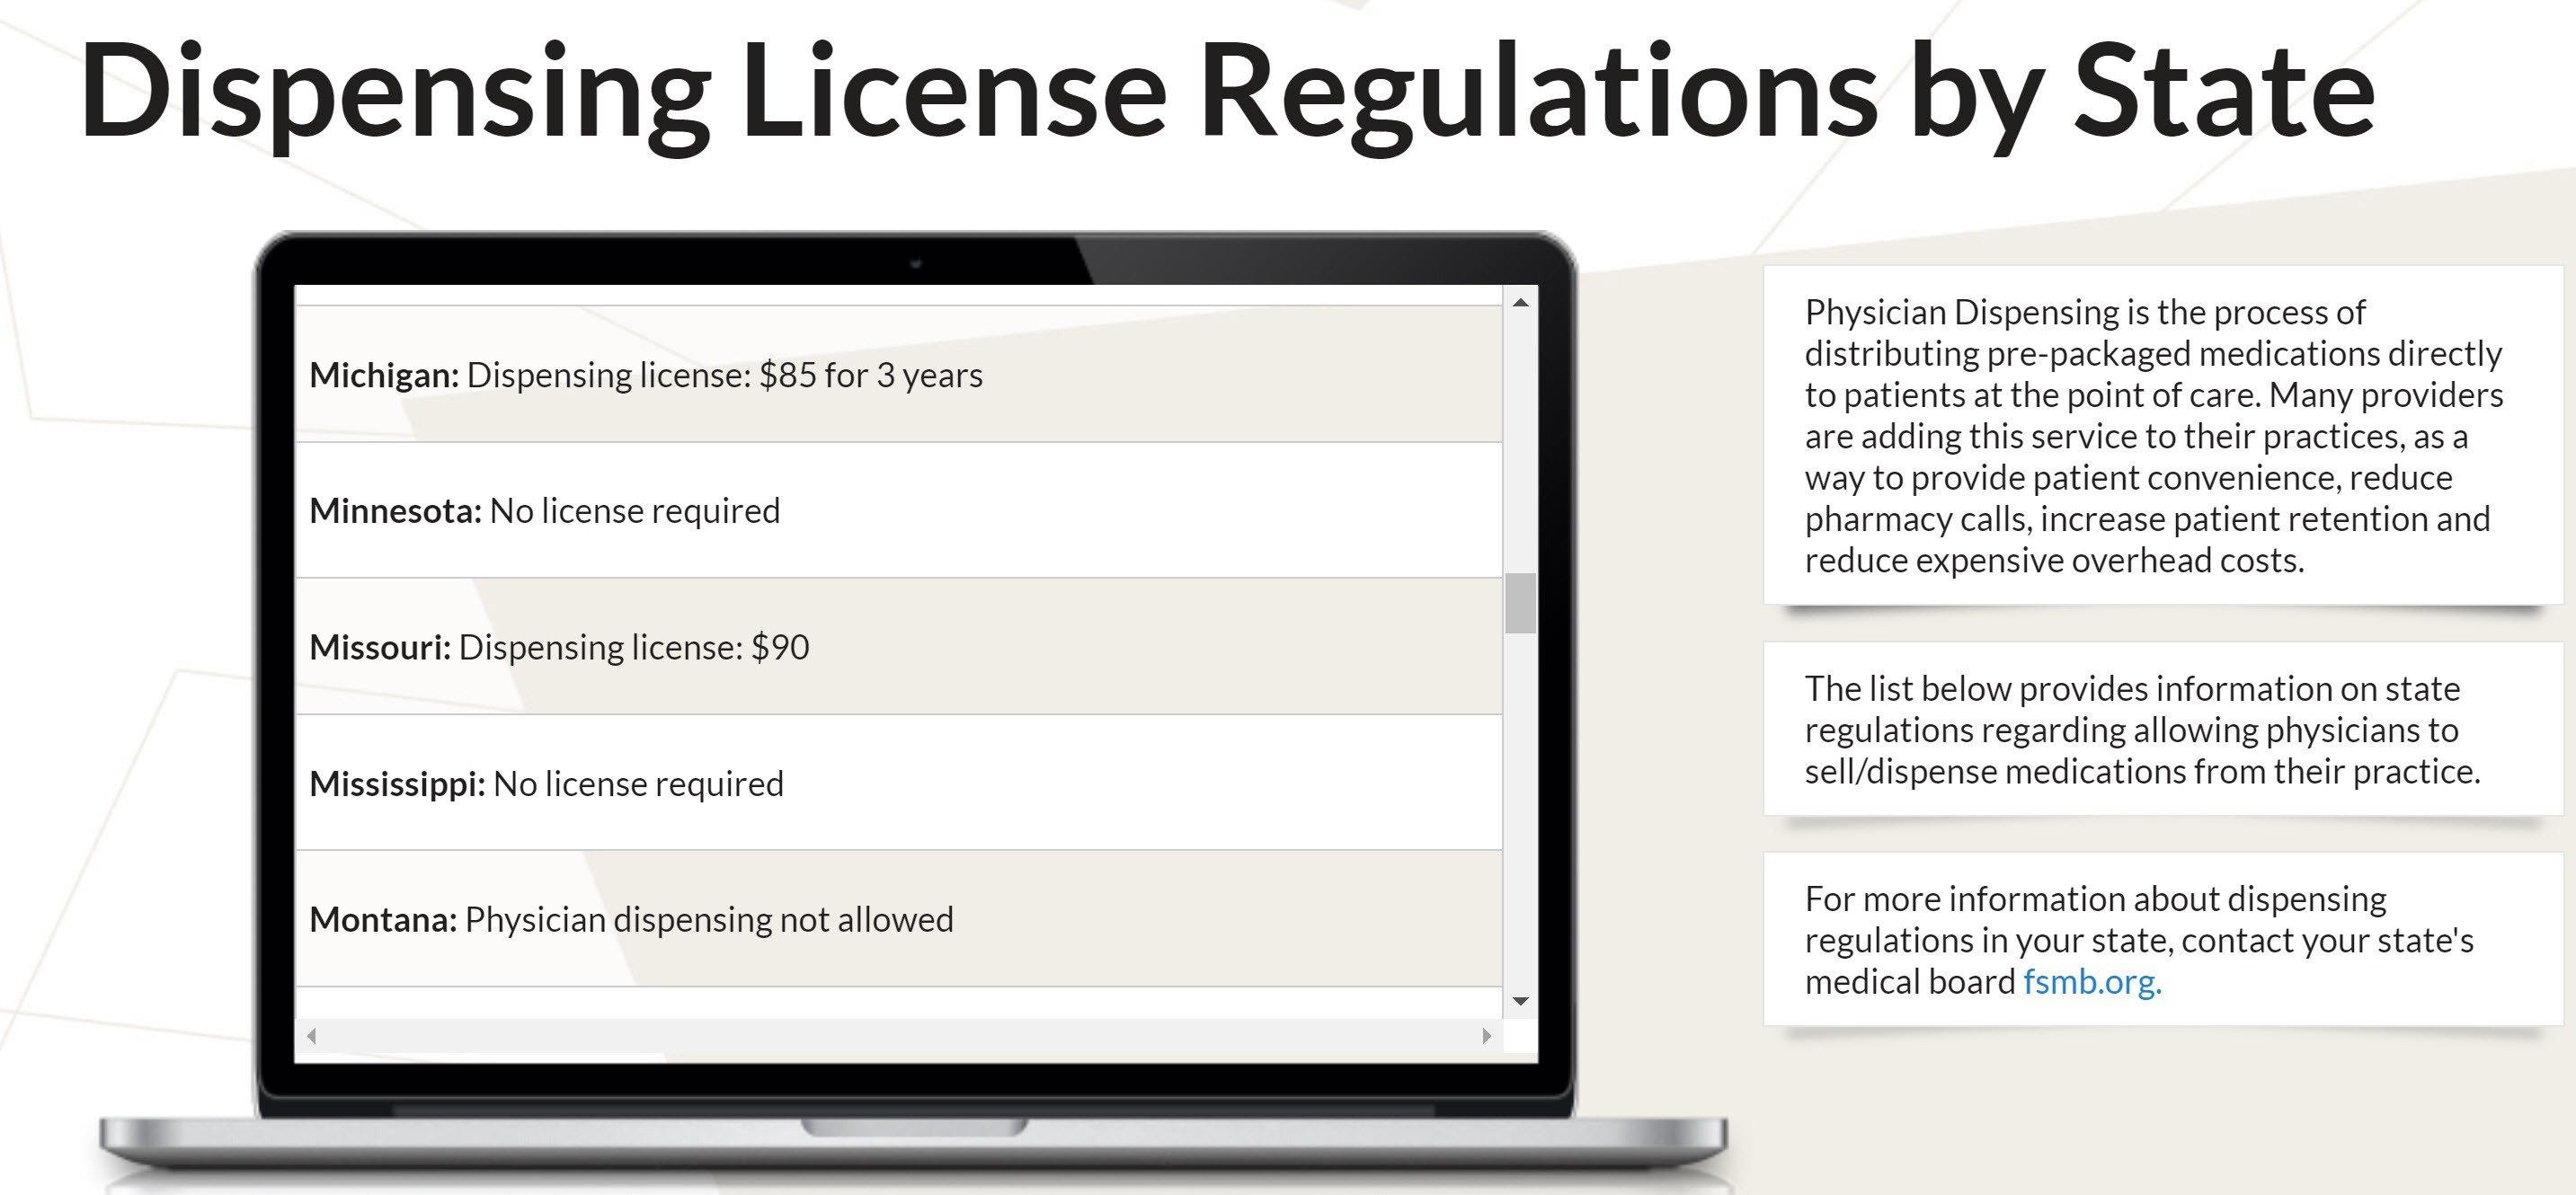 Dispensing License Regulations by State